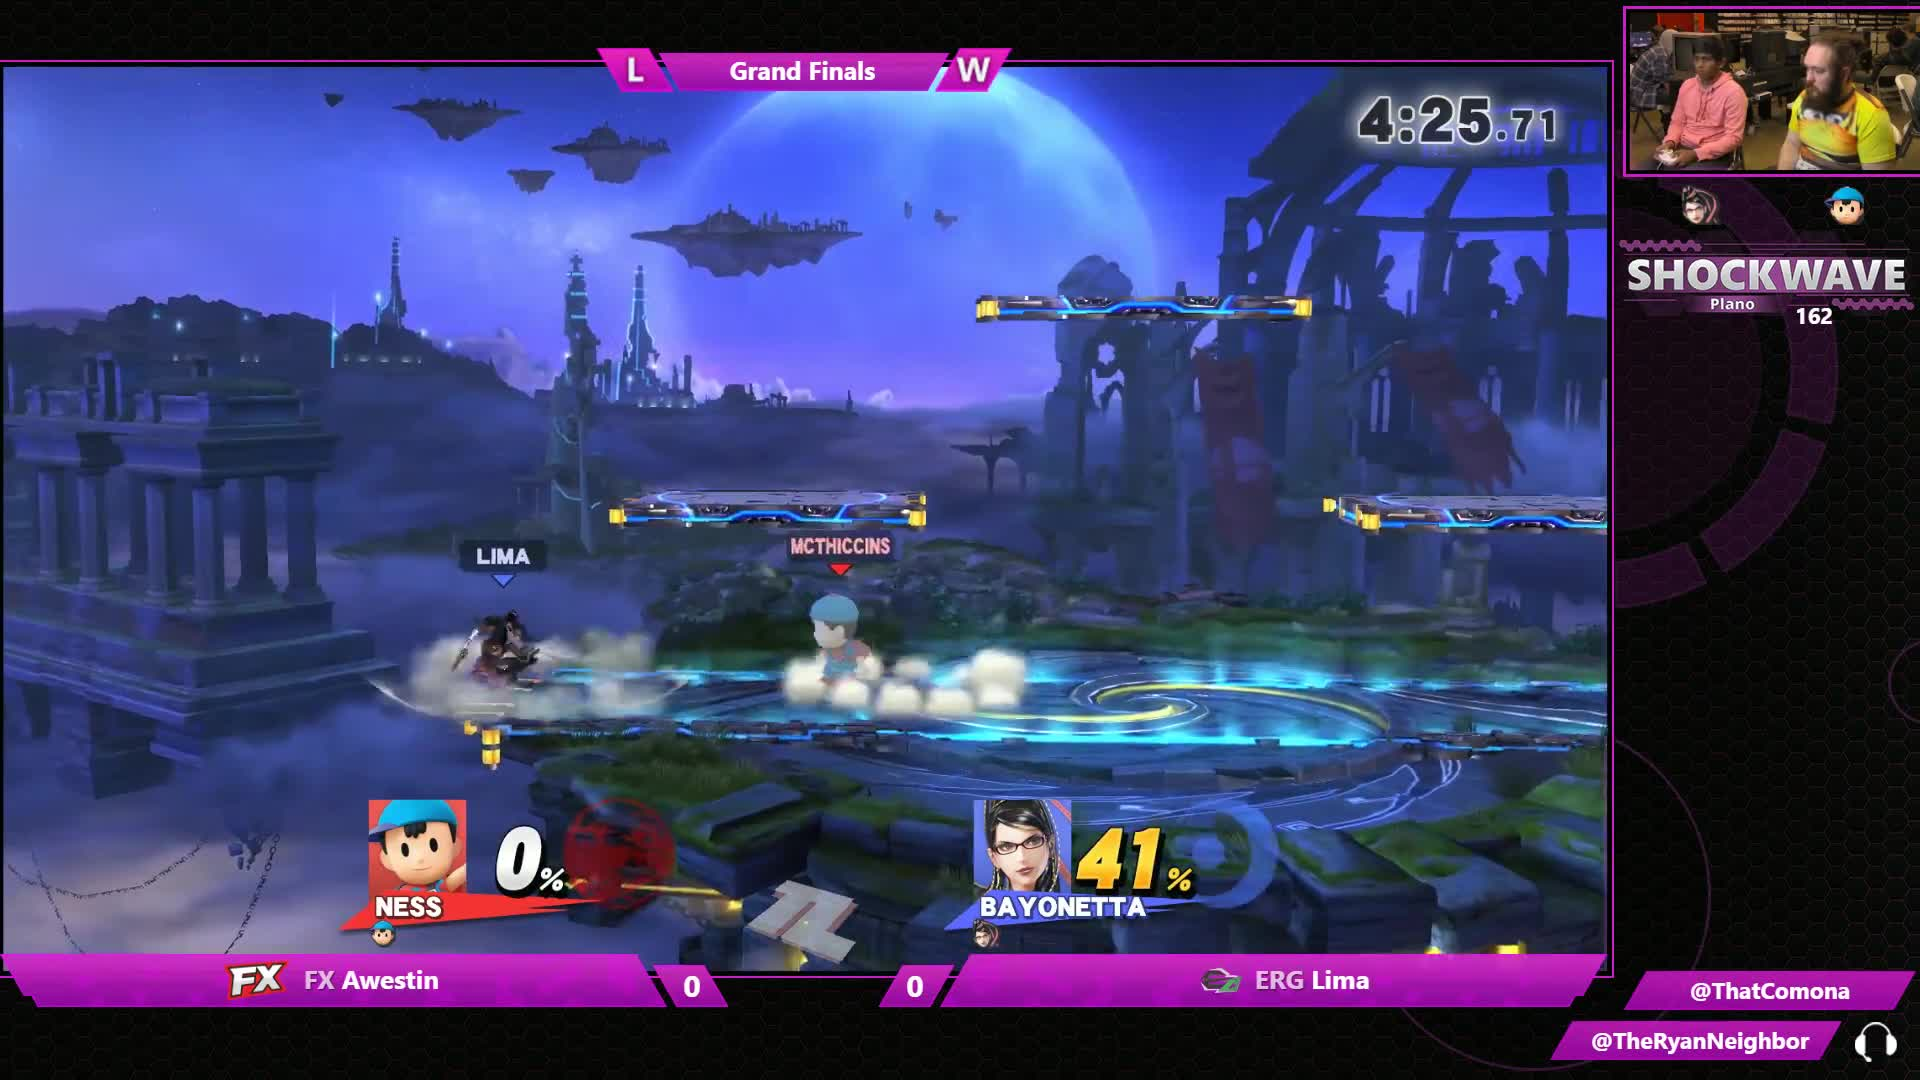 Ness Smash 4 Gifs Search   Search & Share on Homdor